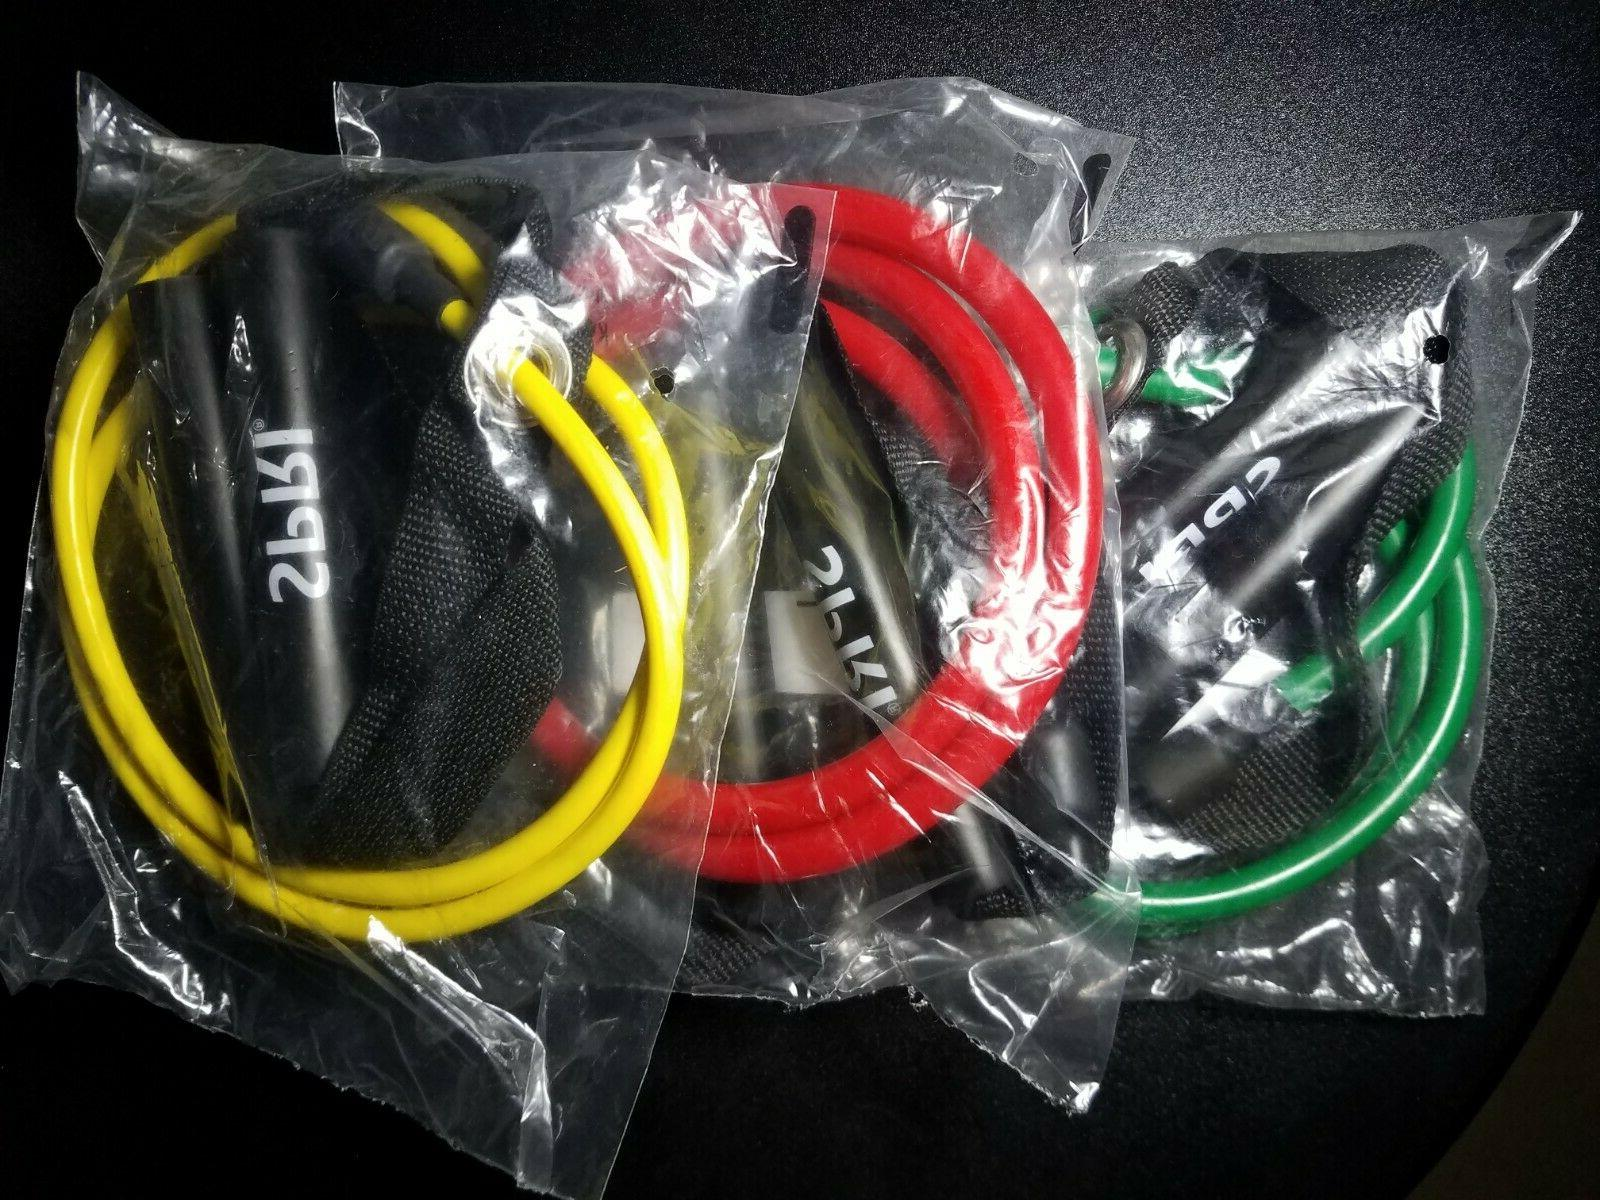 xertube resistance bands exercise cords with handles